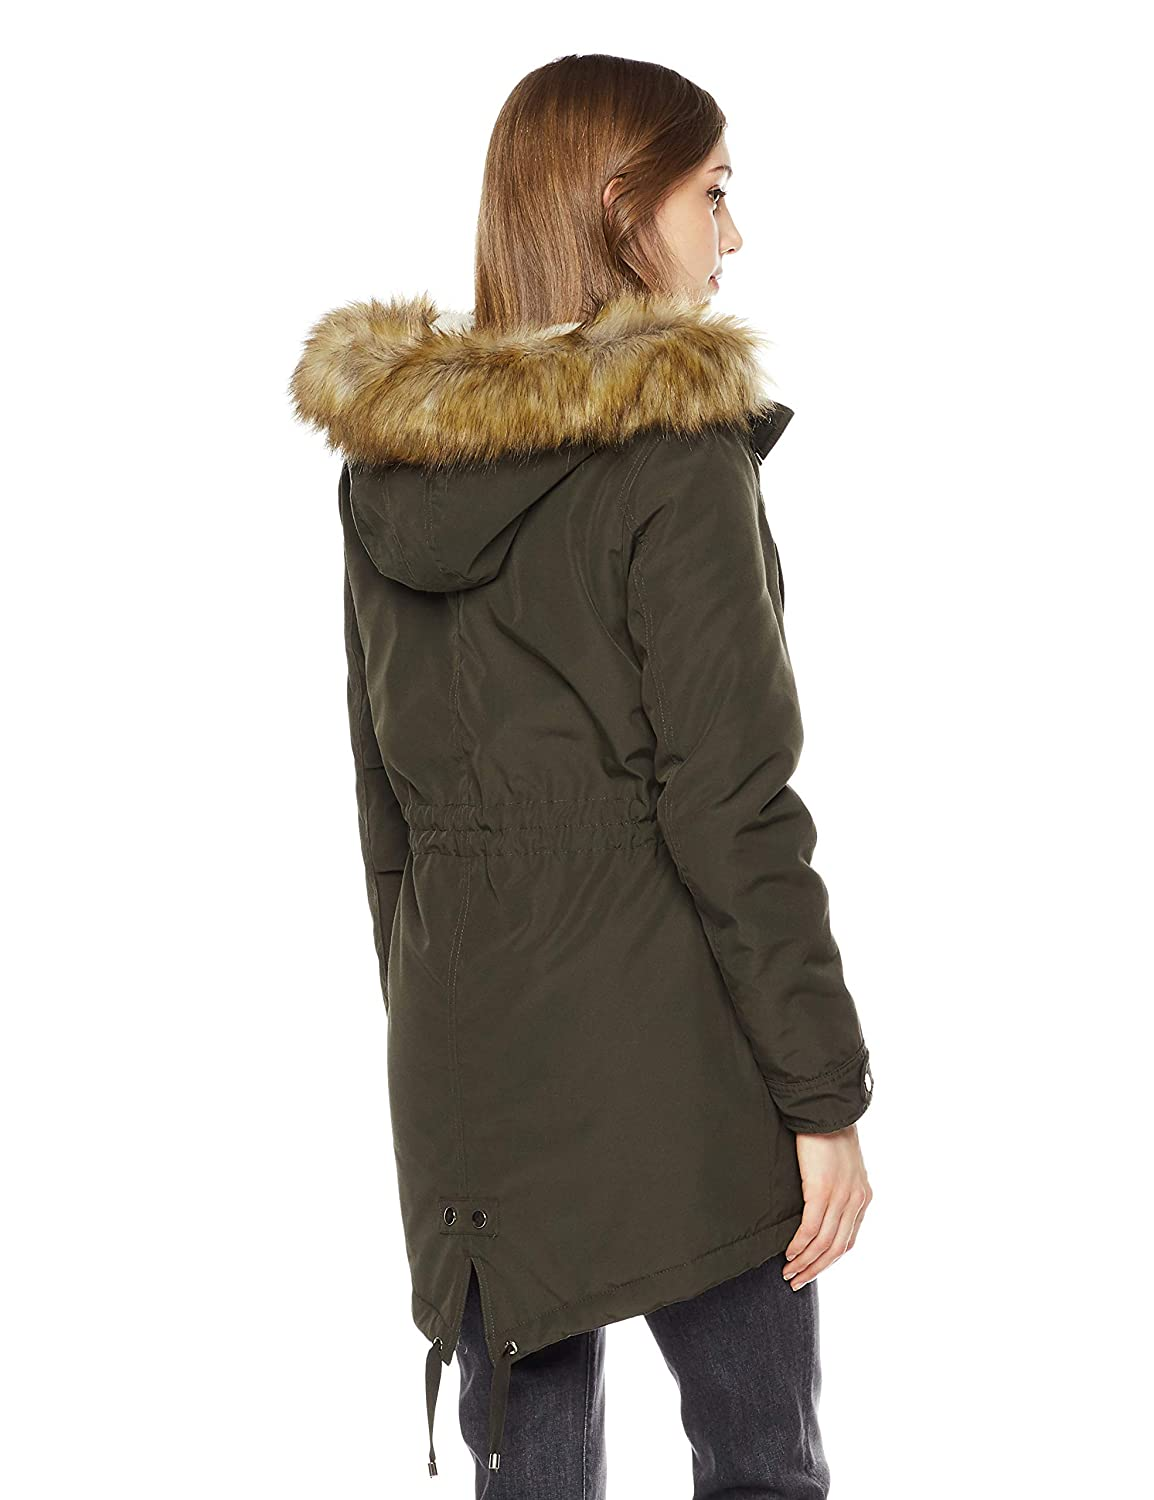 Royal Matrix Womens Mid Length Warm Winter Water-Resistant Sherpa Lined Parka Coat with Removable Faux Fur